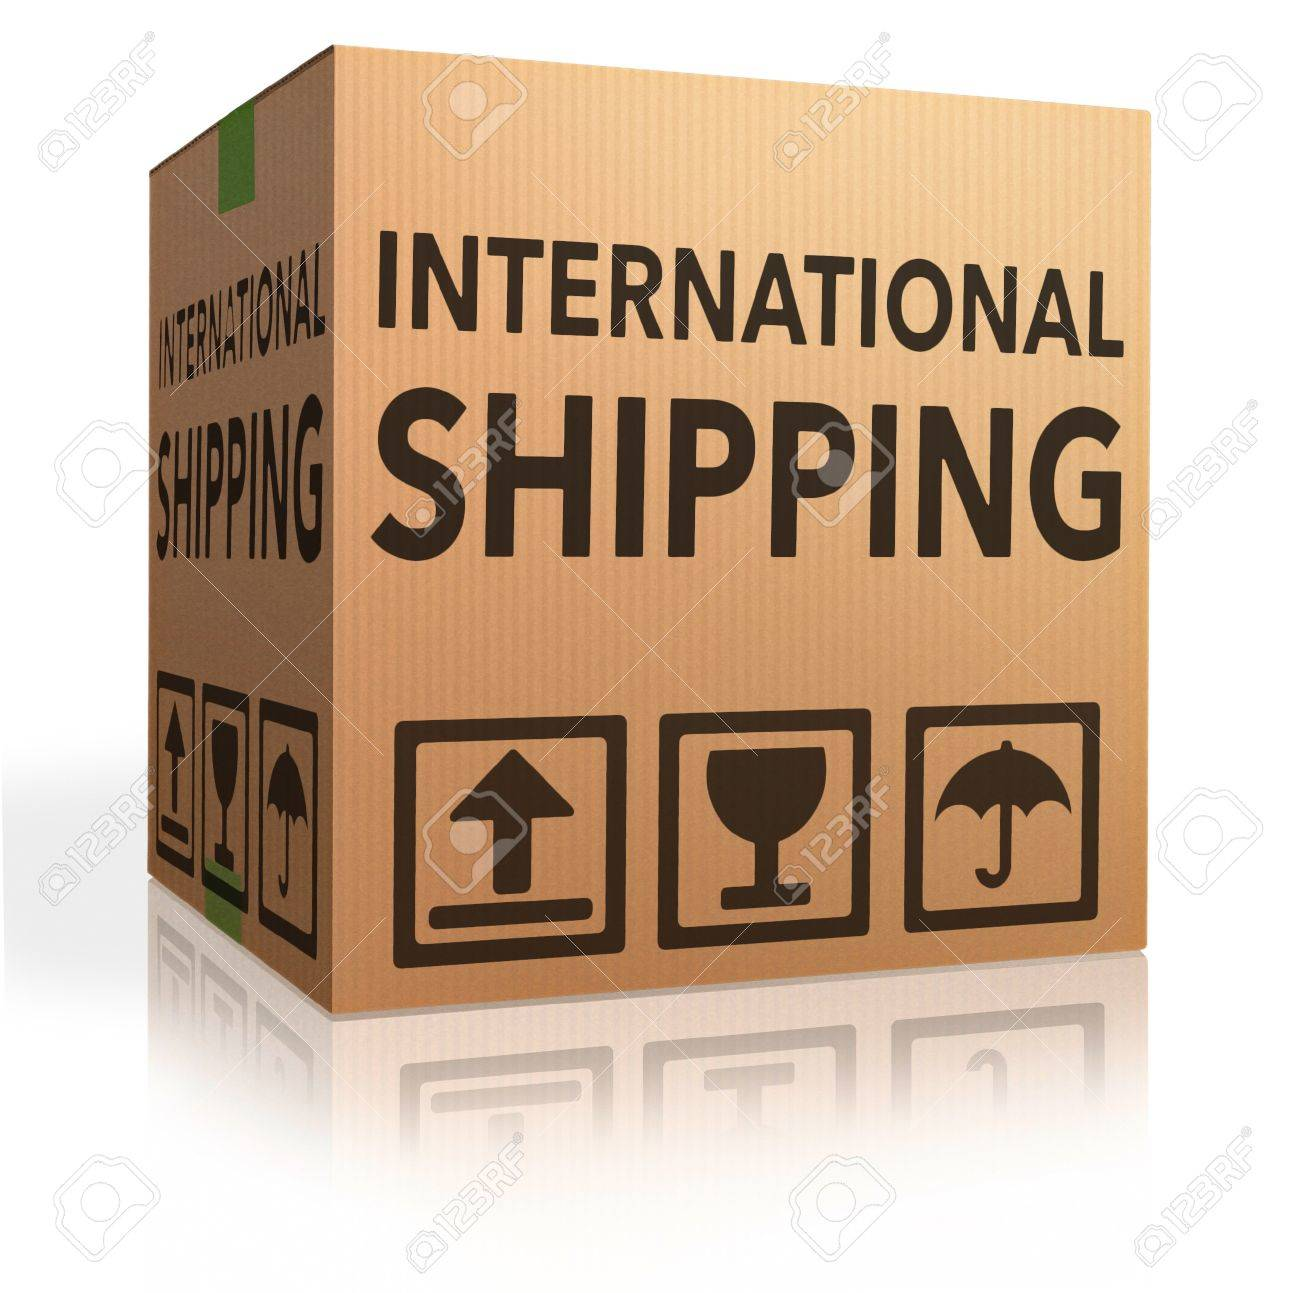 international delivery worldwide shipment of online package order